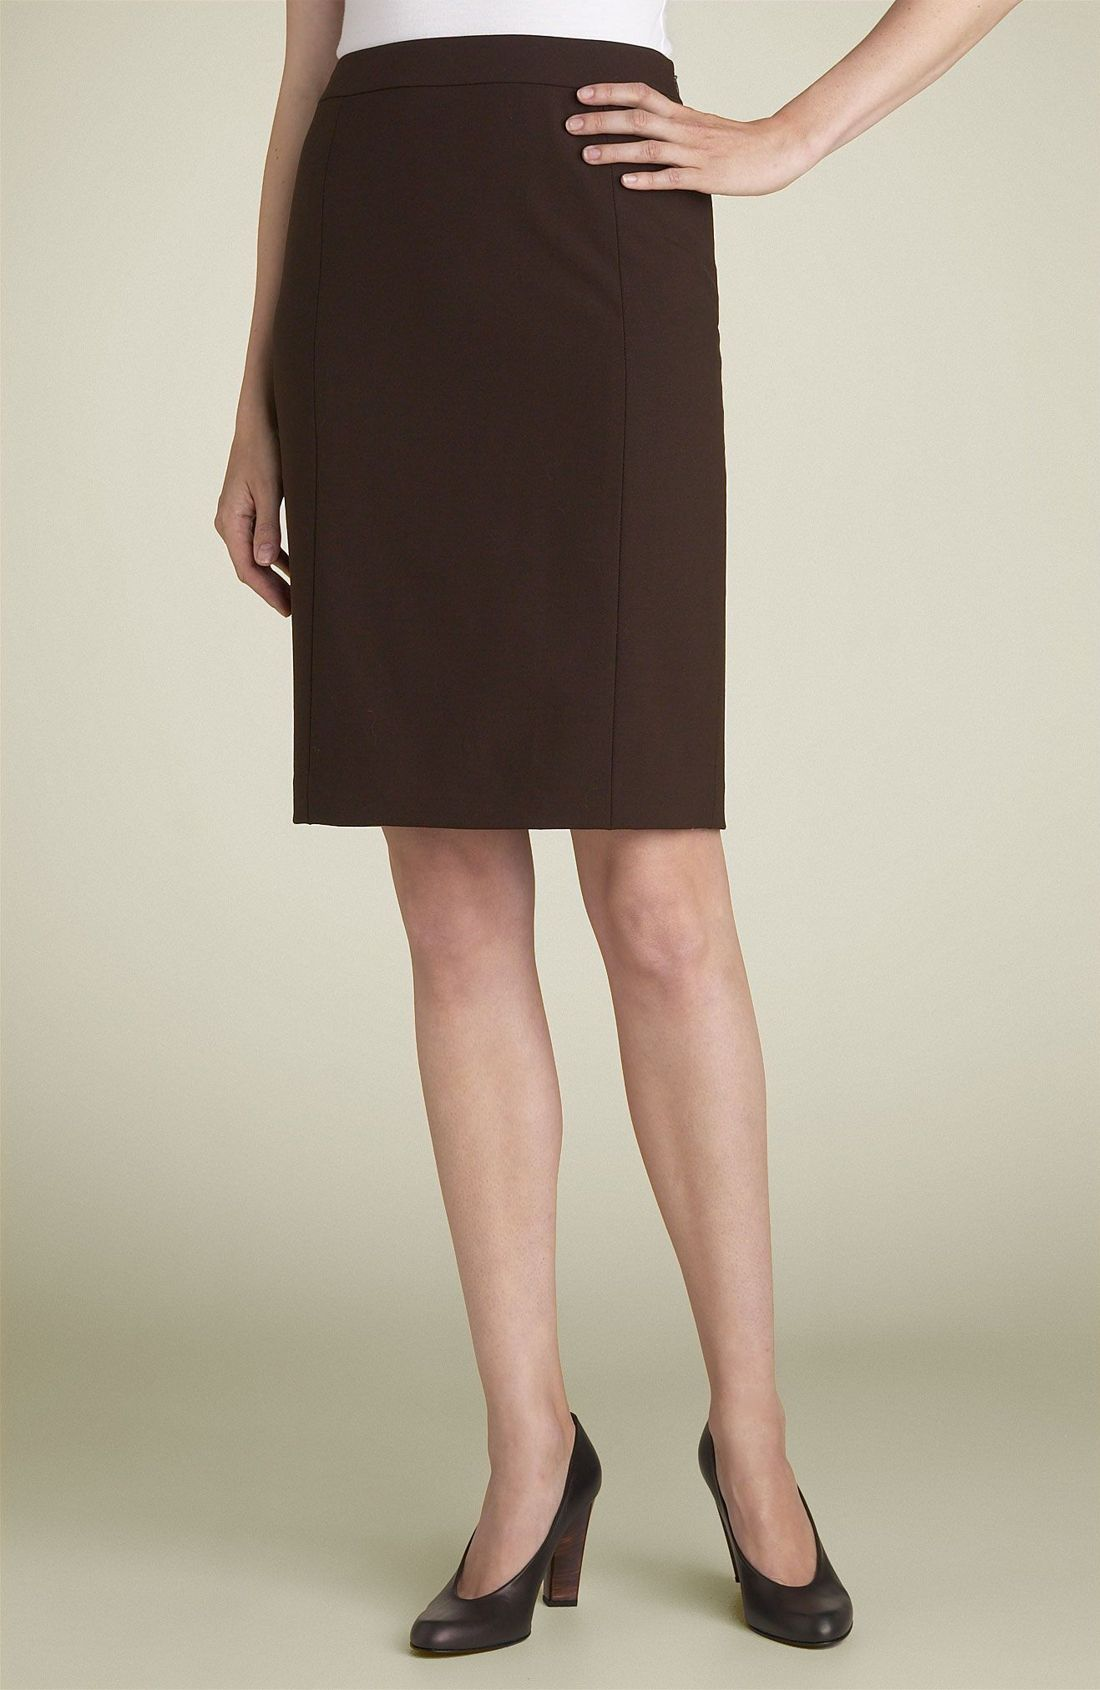 lafayette 148 new york stretch wool pencil skirt in brown